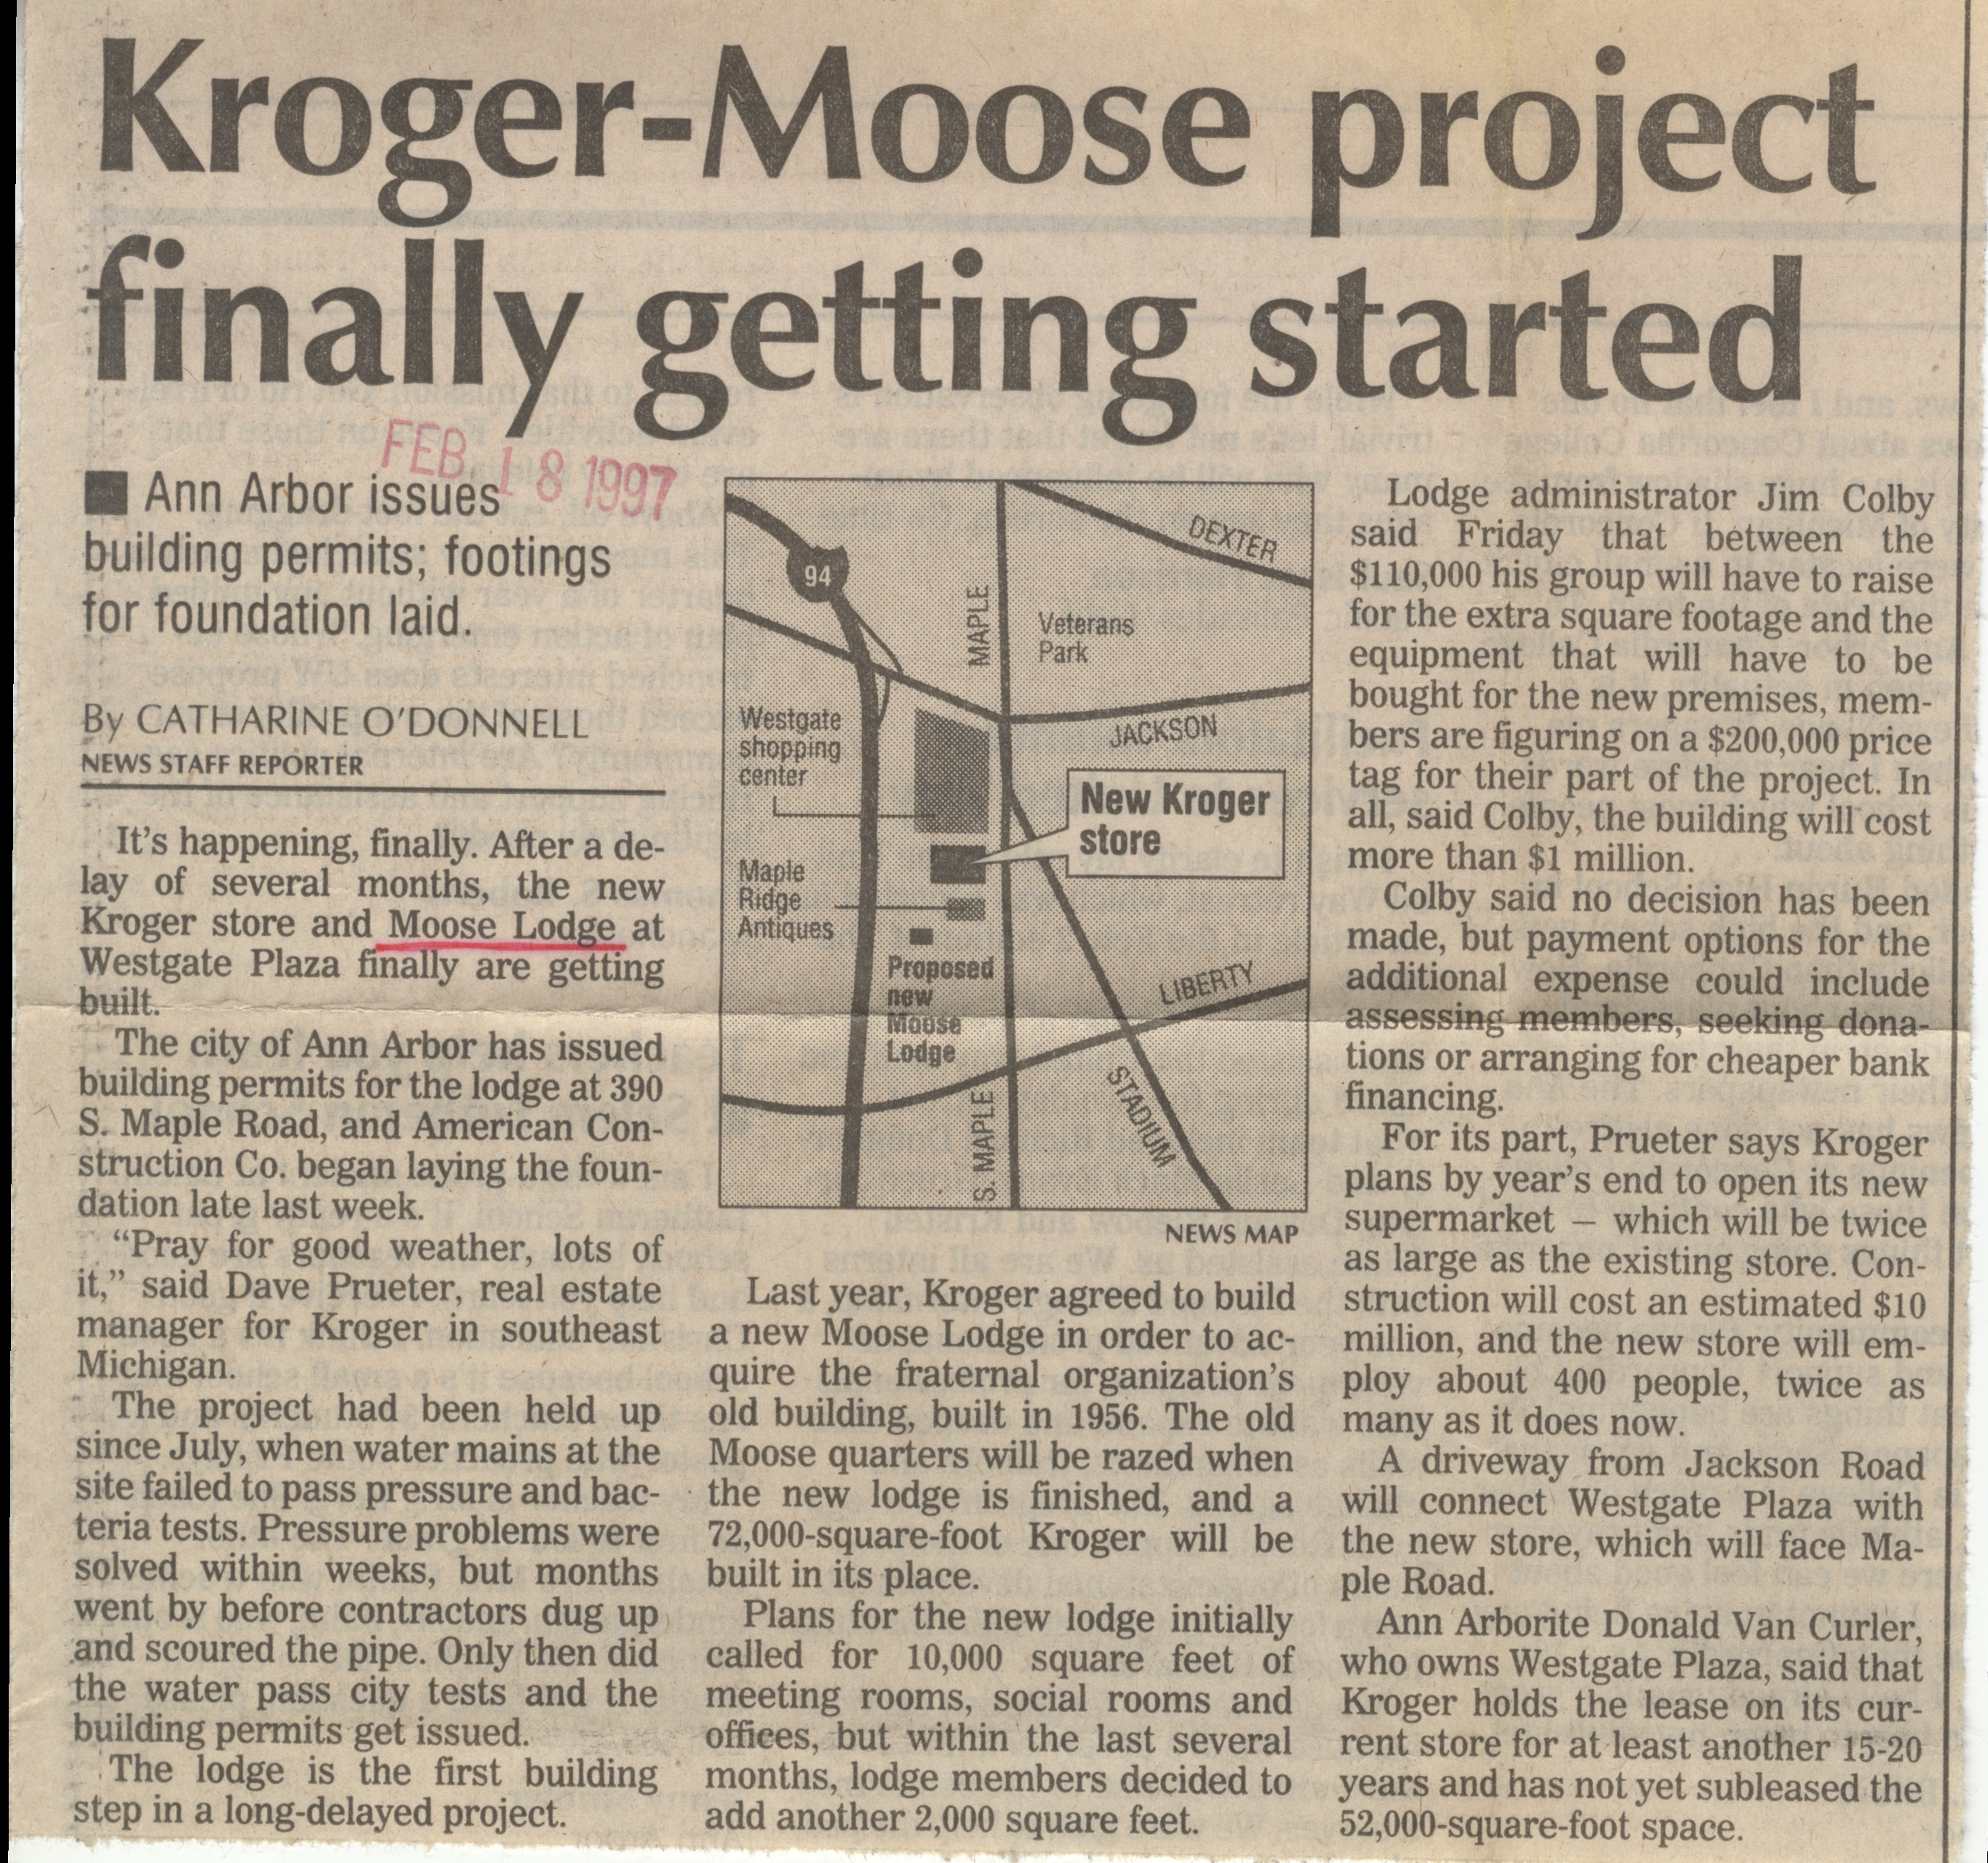 Kroger-Moose project finally getting started image